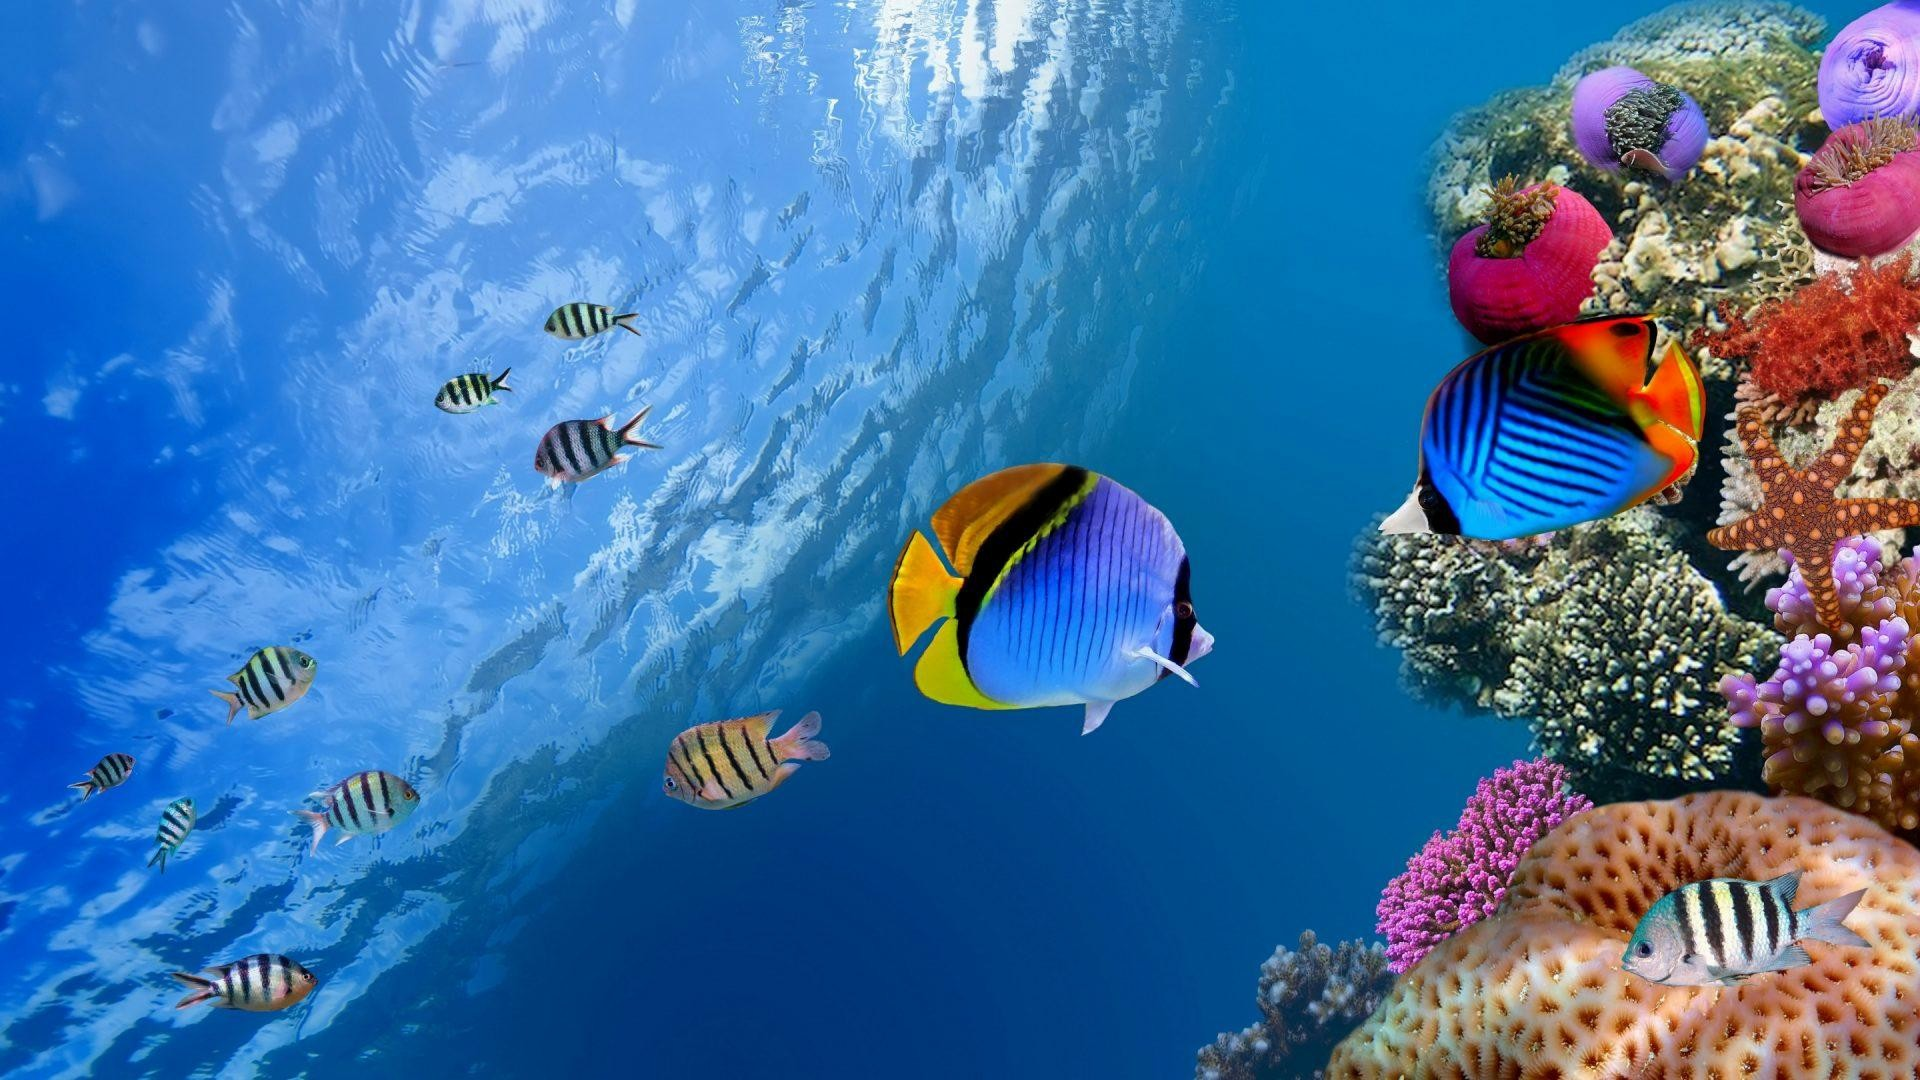 wallpaper.wiki-Awesome-underwater-high-quality-backgrounds-1920×1080-